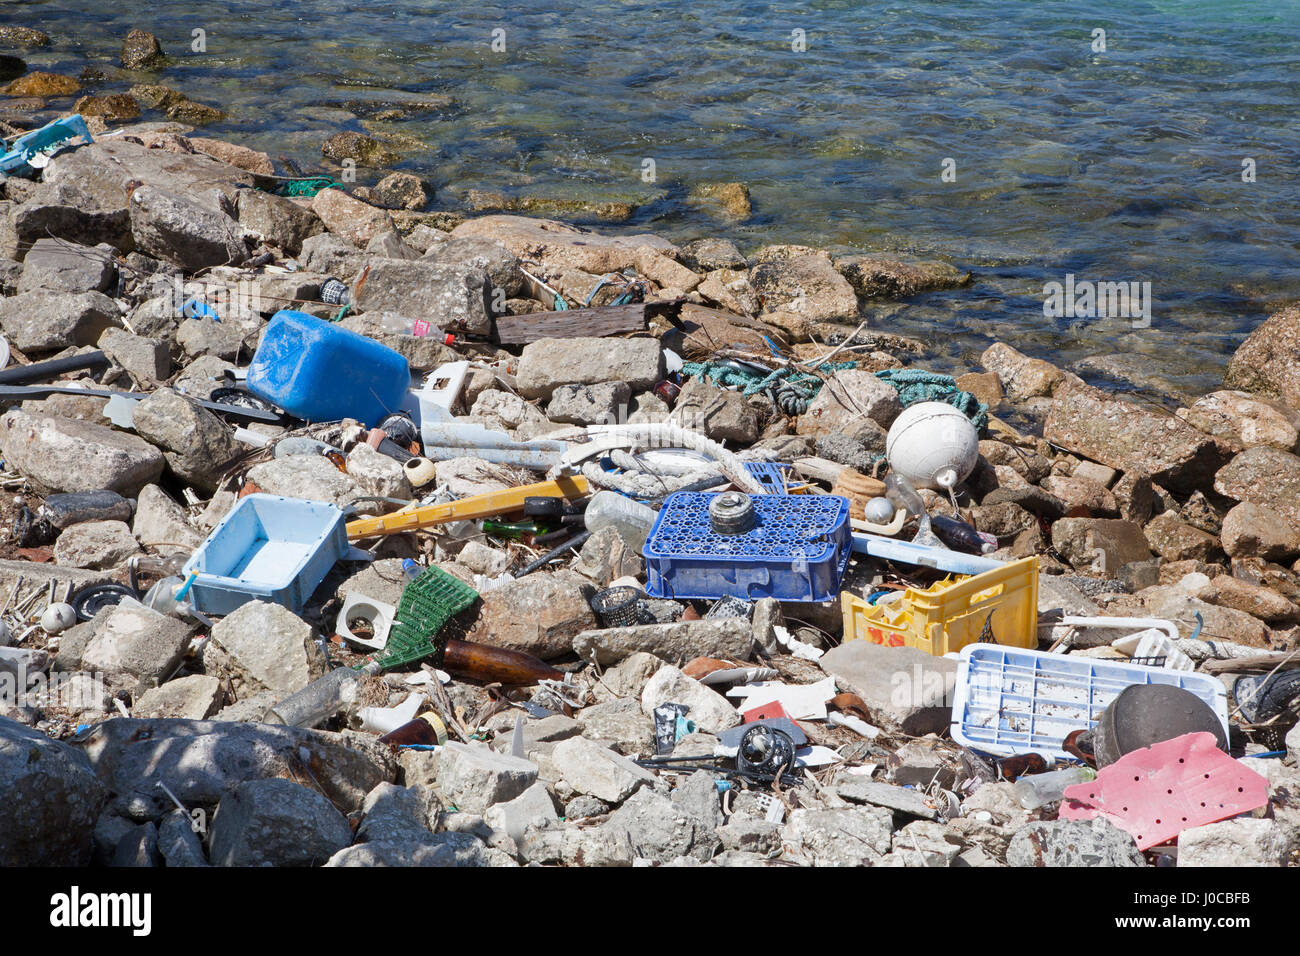 Plastic and glass marine debris washed ashore in the harbor of a North Pacific island - Stock Image